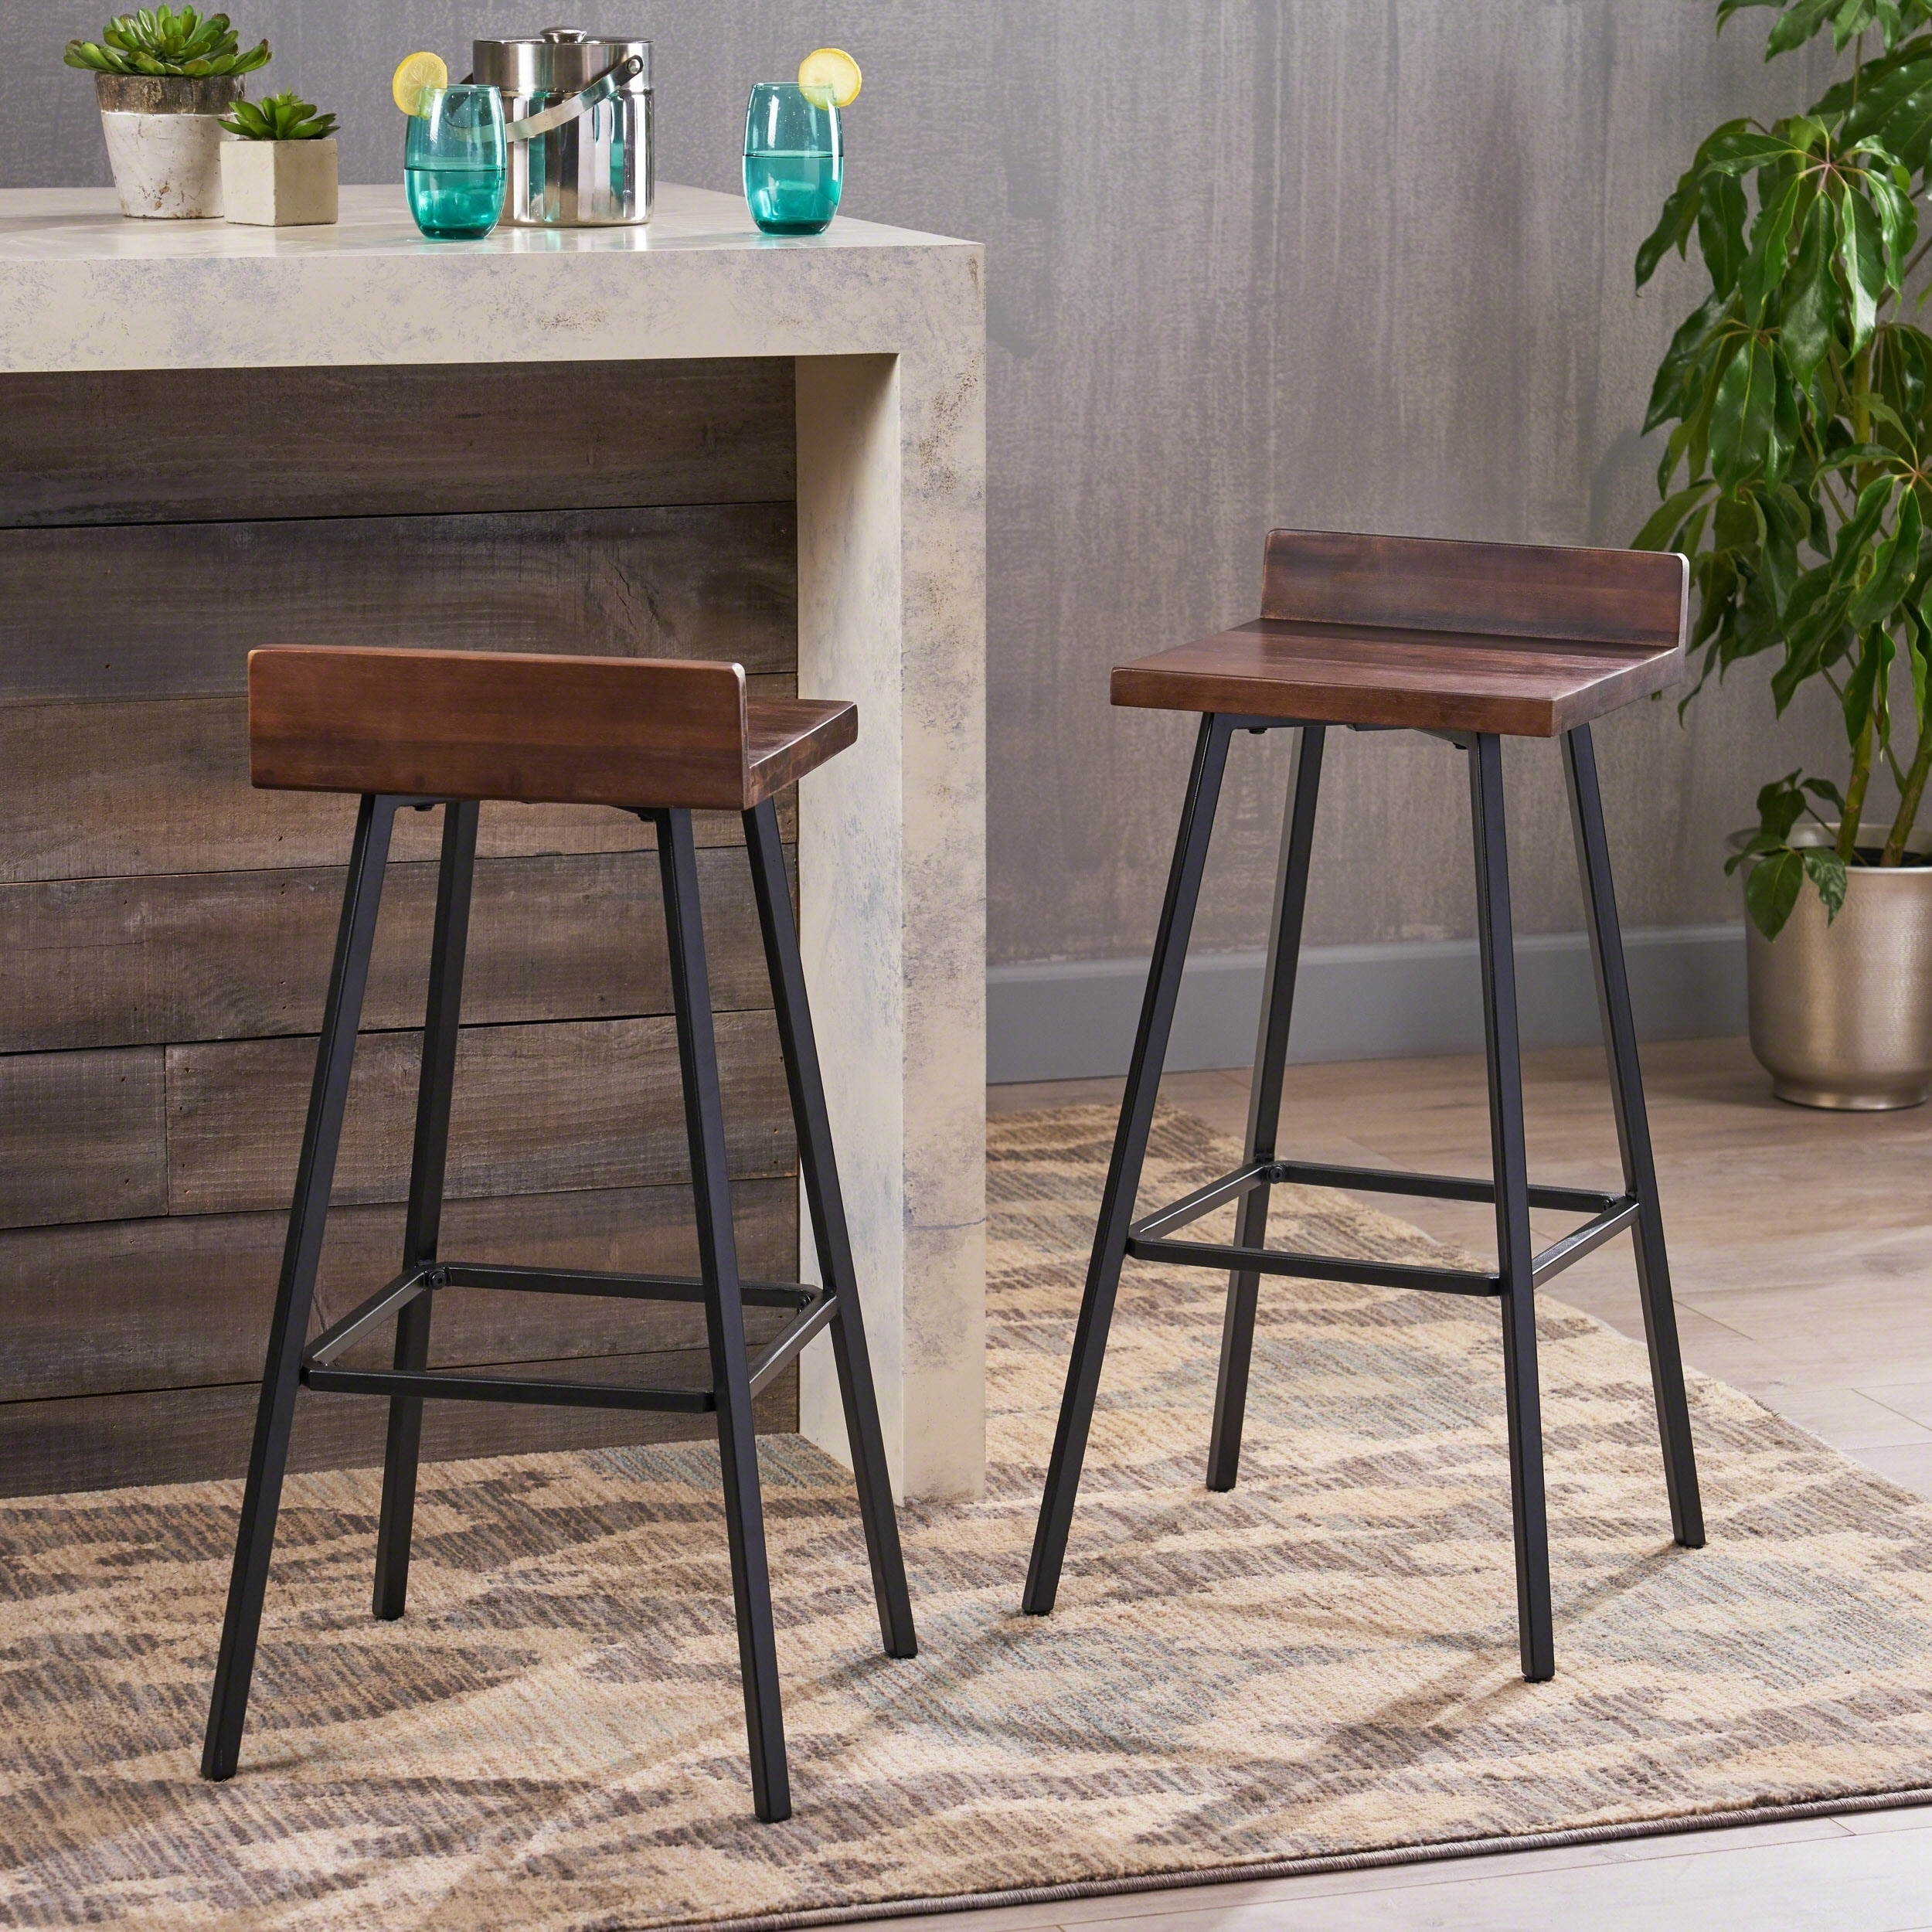 Bidwell contemporary indoor acacia wood bar stools with iron legs set of 2 by christopher knight home